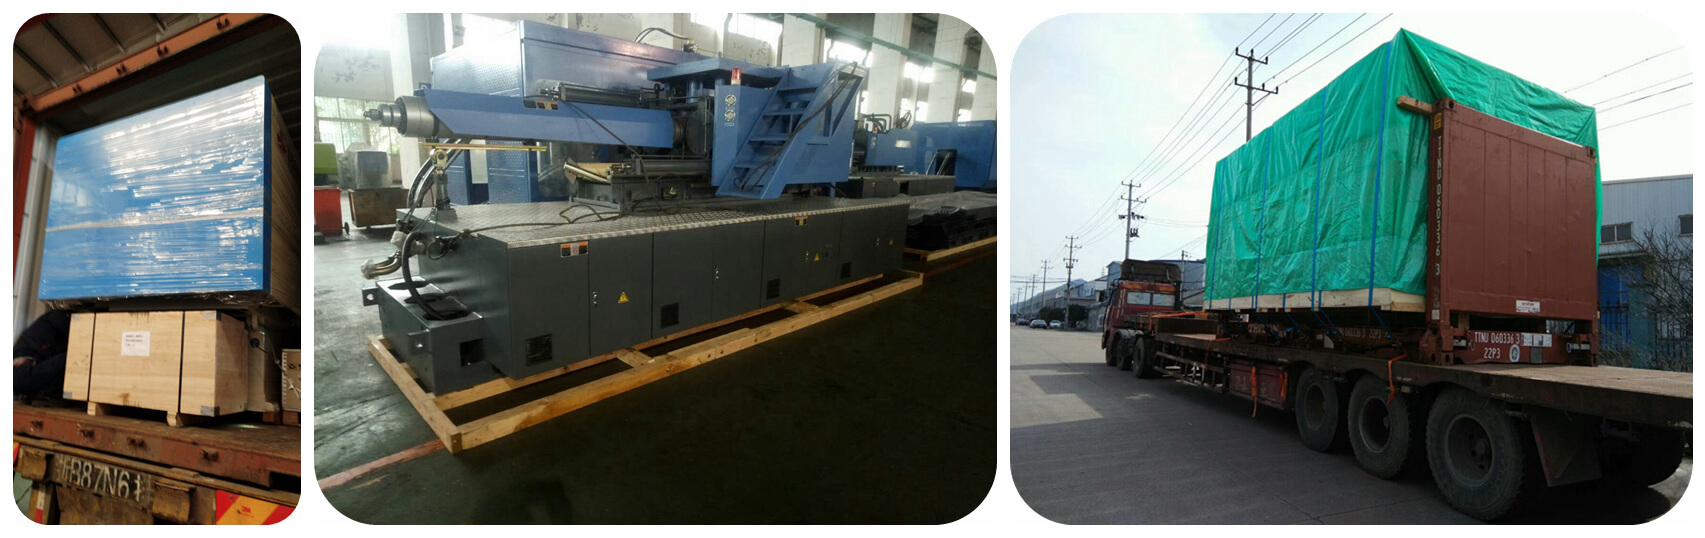 PET220 220Ton PET Preform Injection Molding Machine